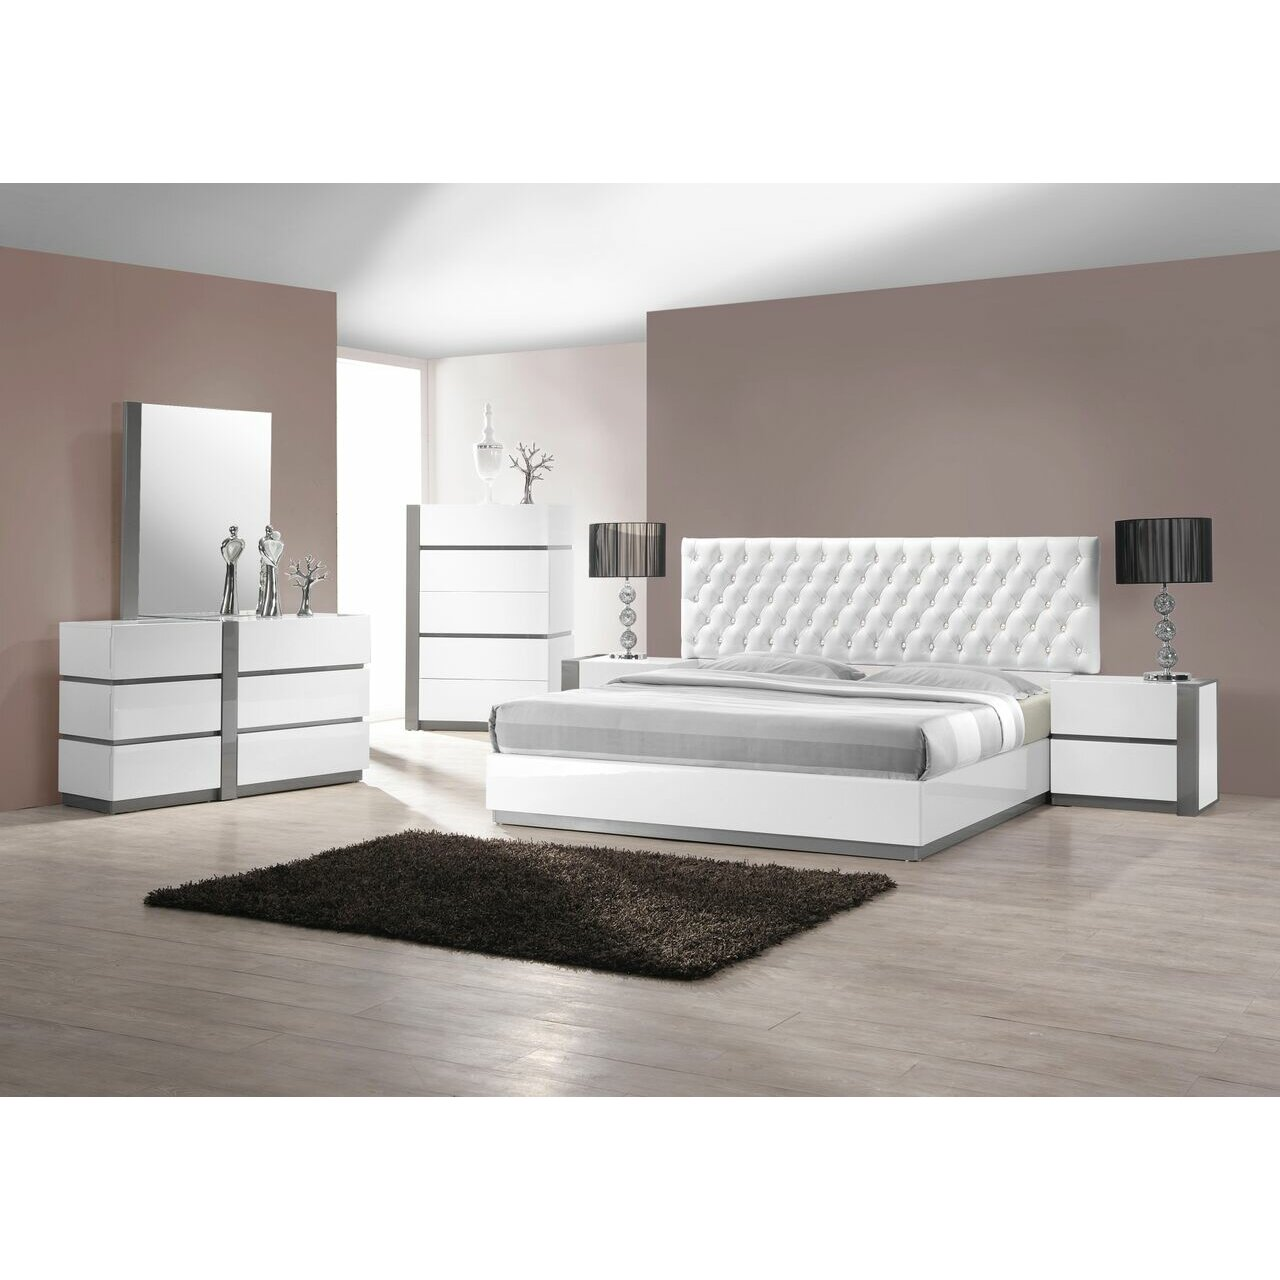 Modern Sleigh Bedroom Sets Modern Contemporary Bedroom Sets Allmodern